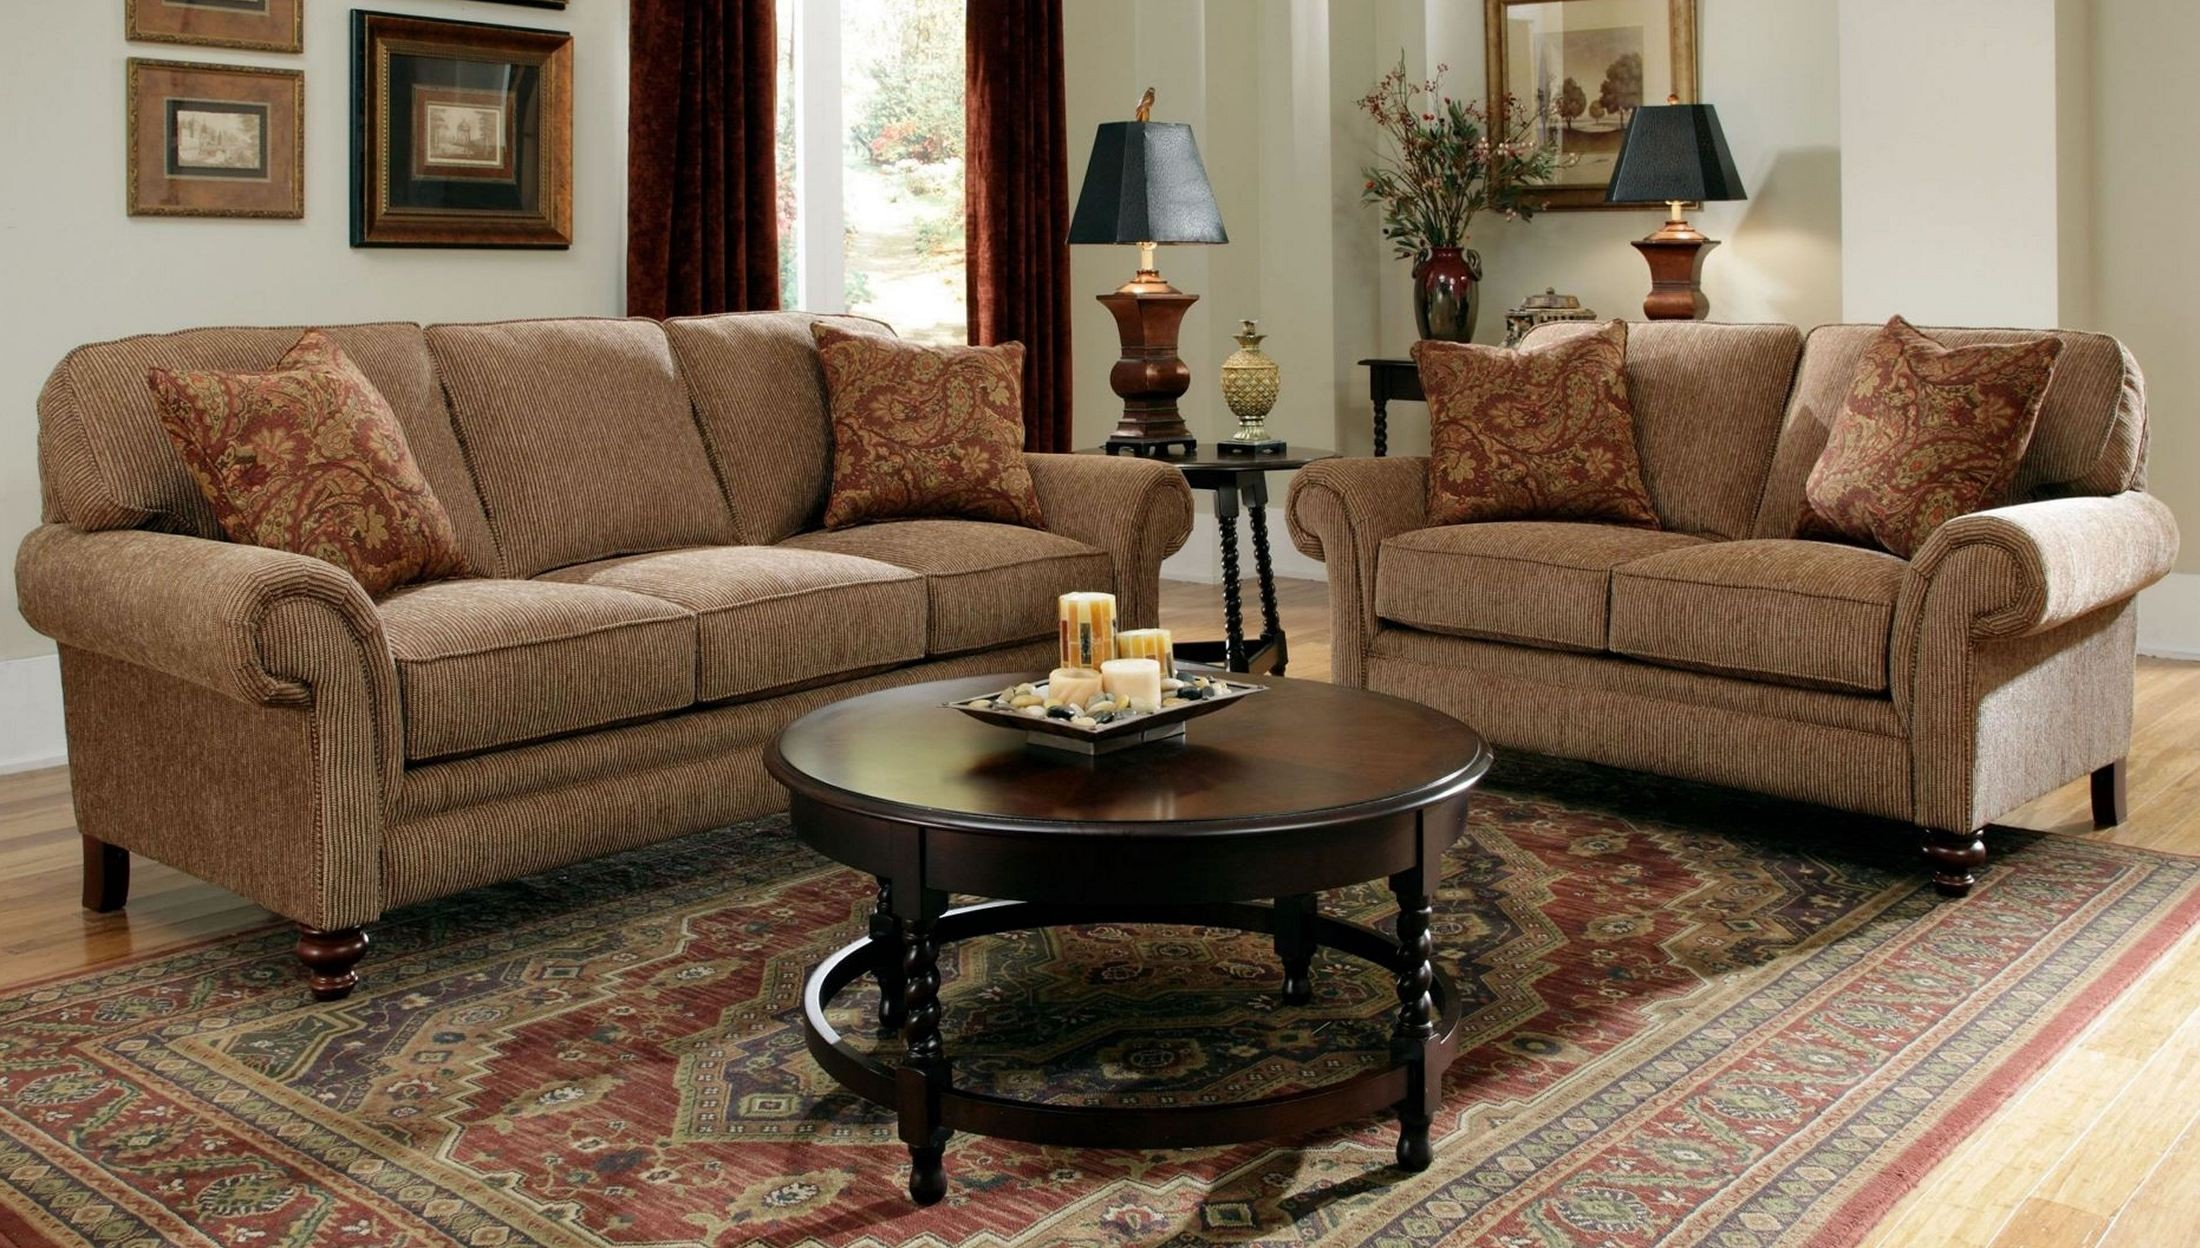 Larissa Cherry Stain Chenille Fabric Living Room Set From Broyhill 6112 3q1 8370 78 Coleman